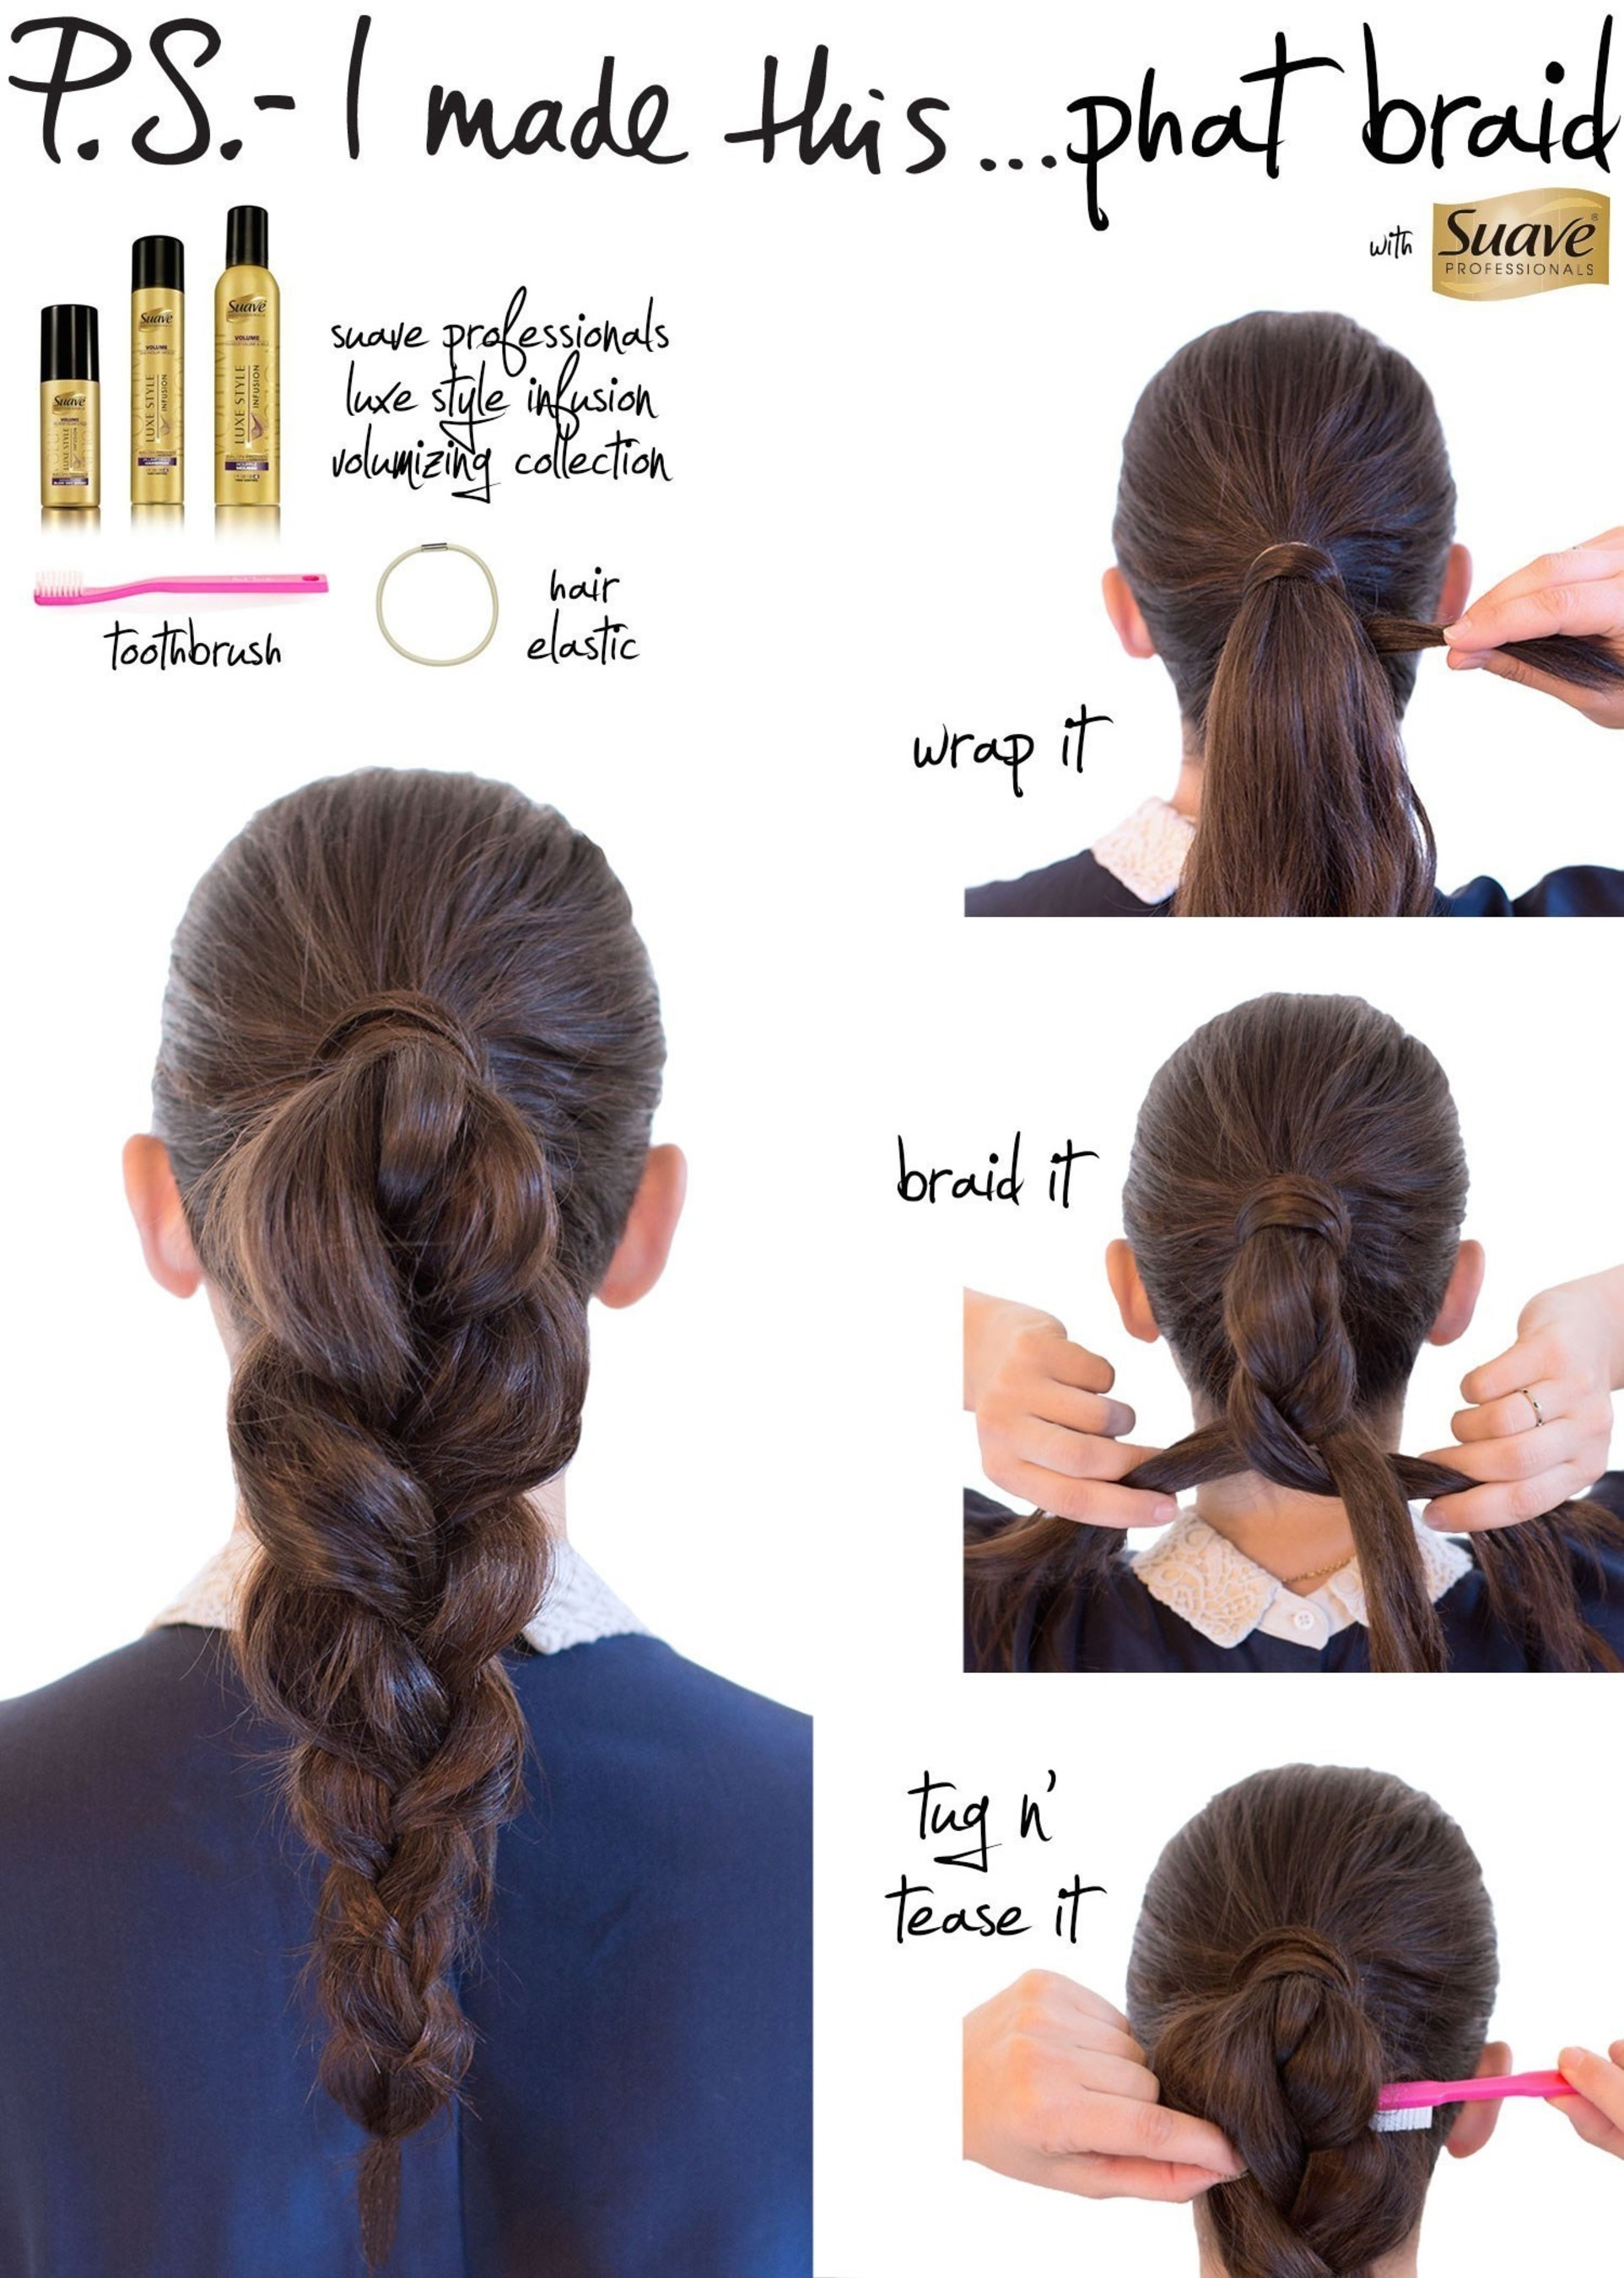 Erica Domesek, founder of P.S. - I made this... shows women how to create a braided look with the help of Suave Professionals.